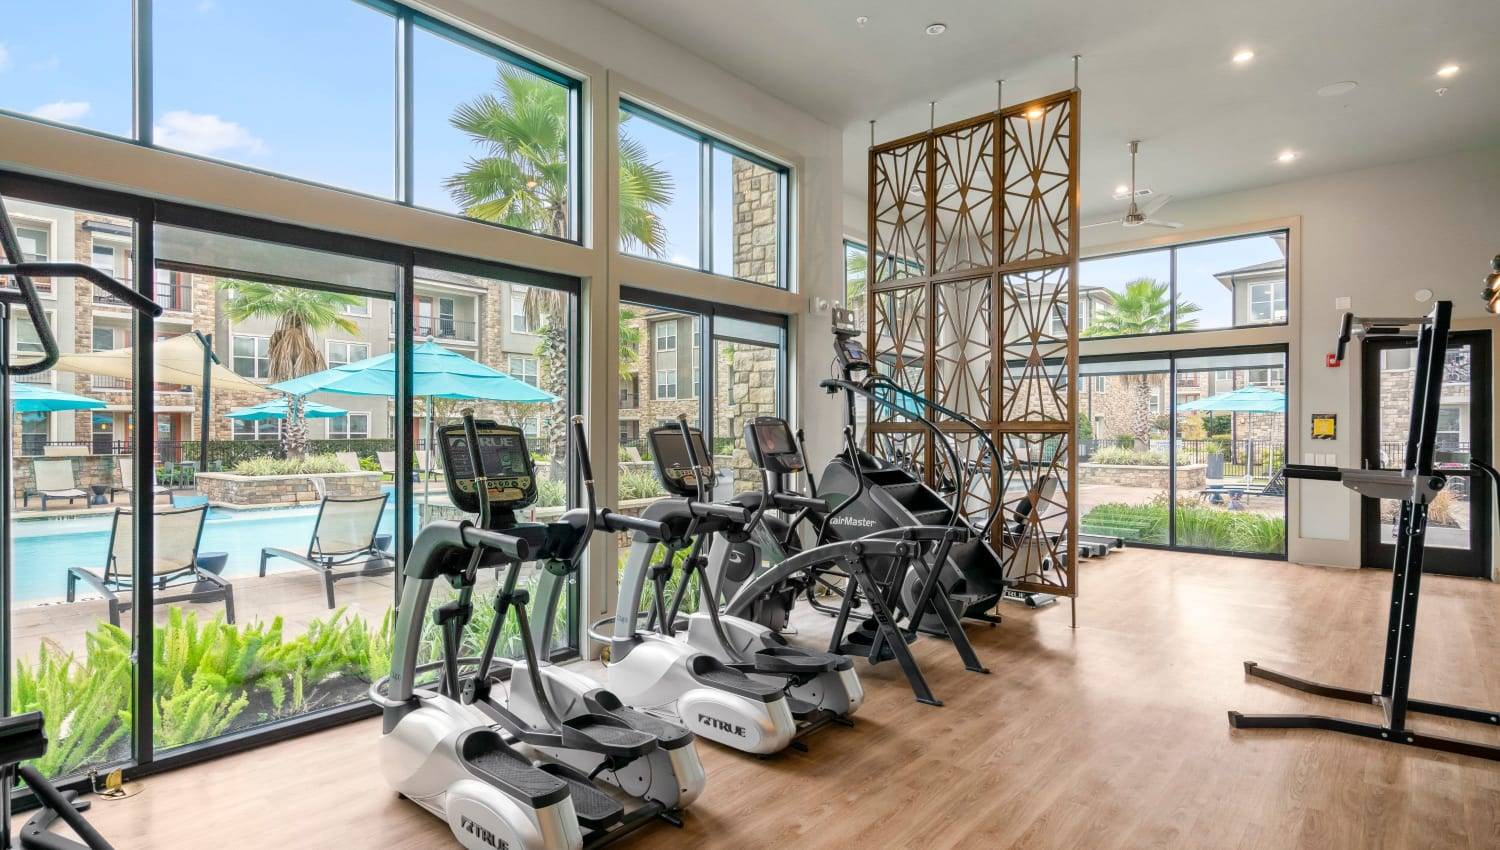 Treadmills and large glass windows in gym at Olympus Grand Crossing in Katy, Texas